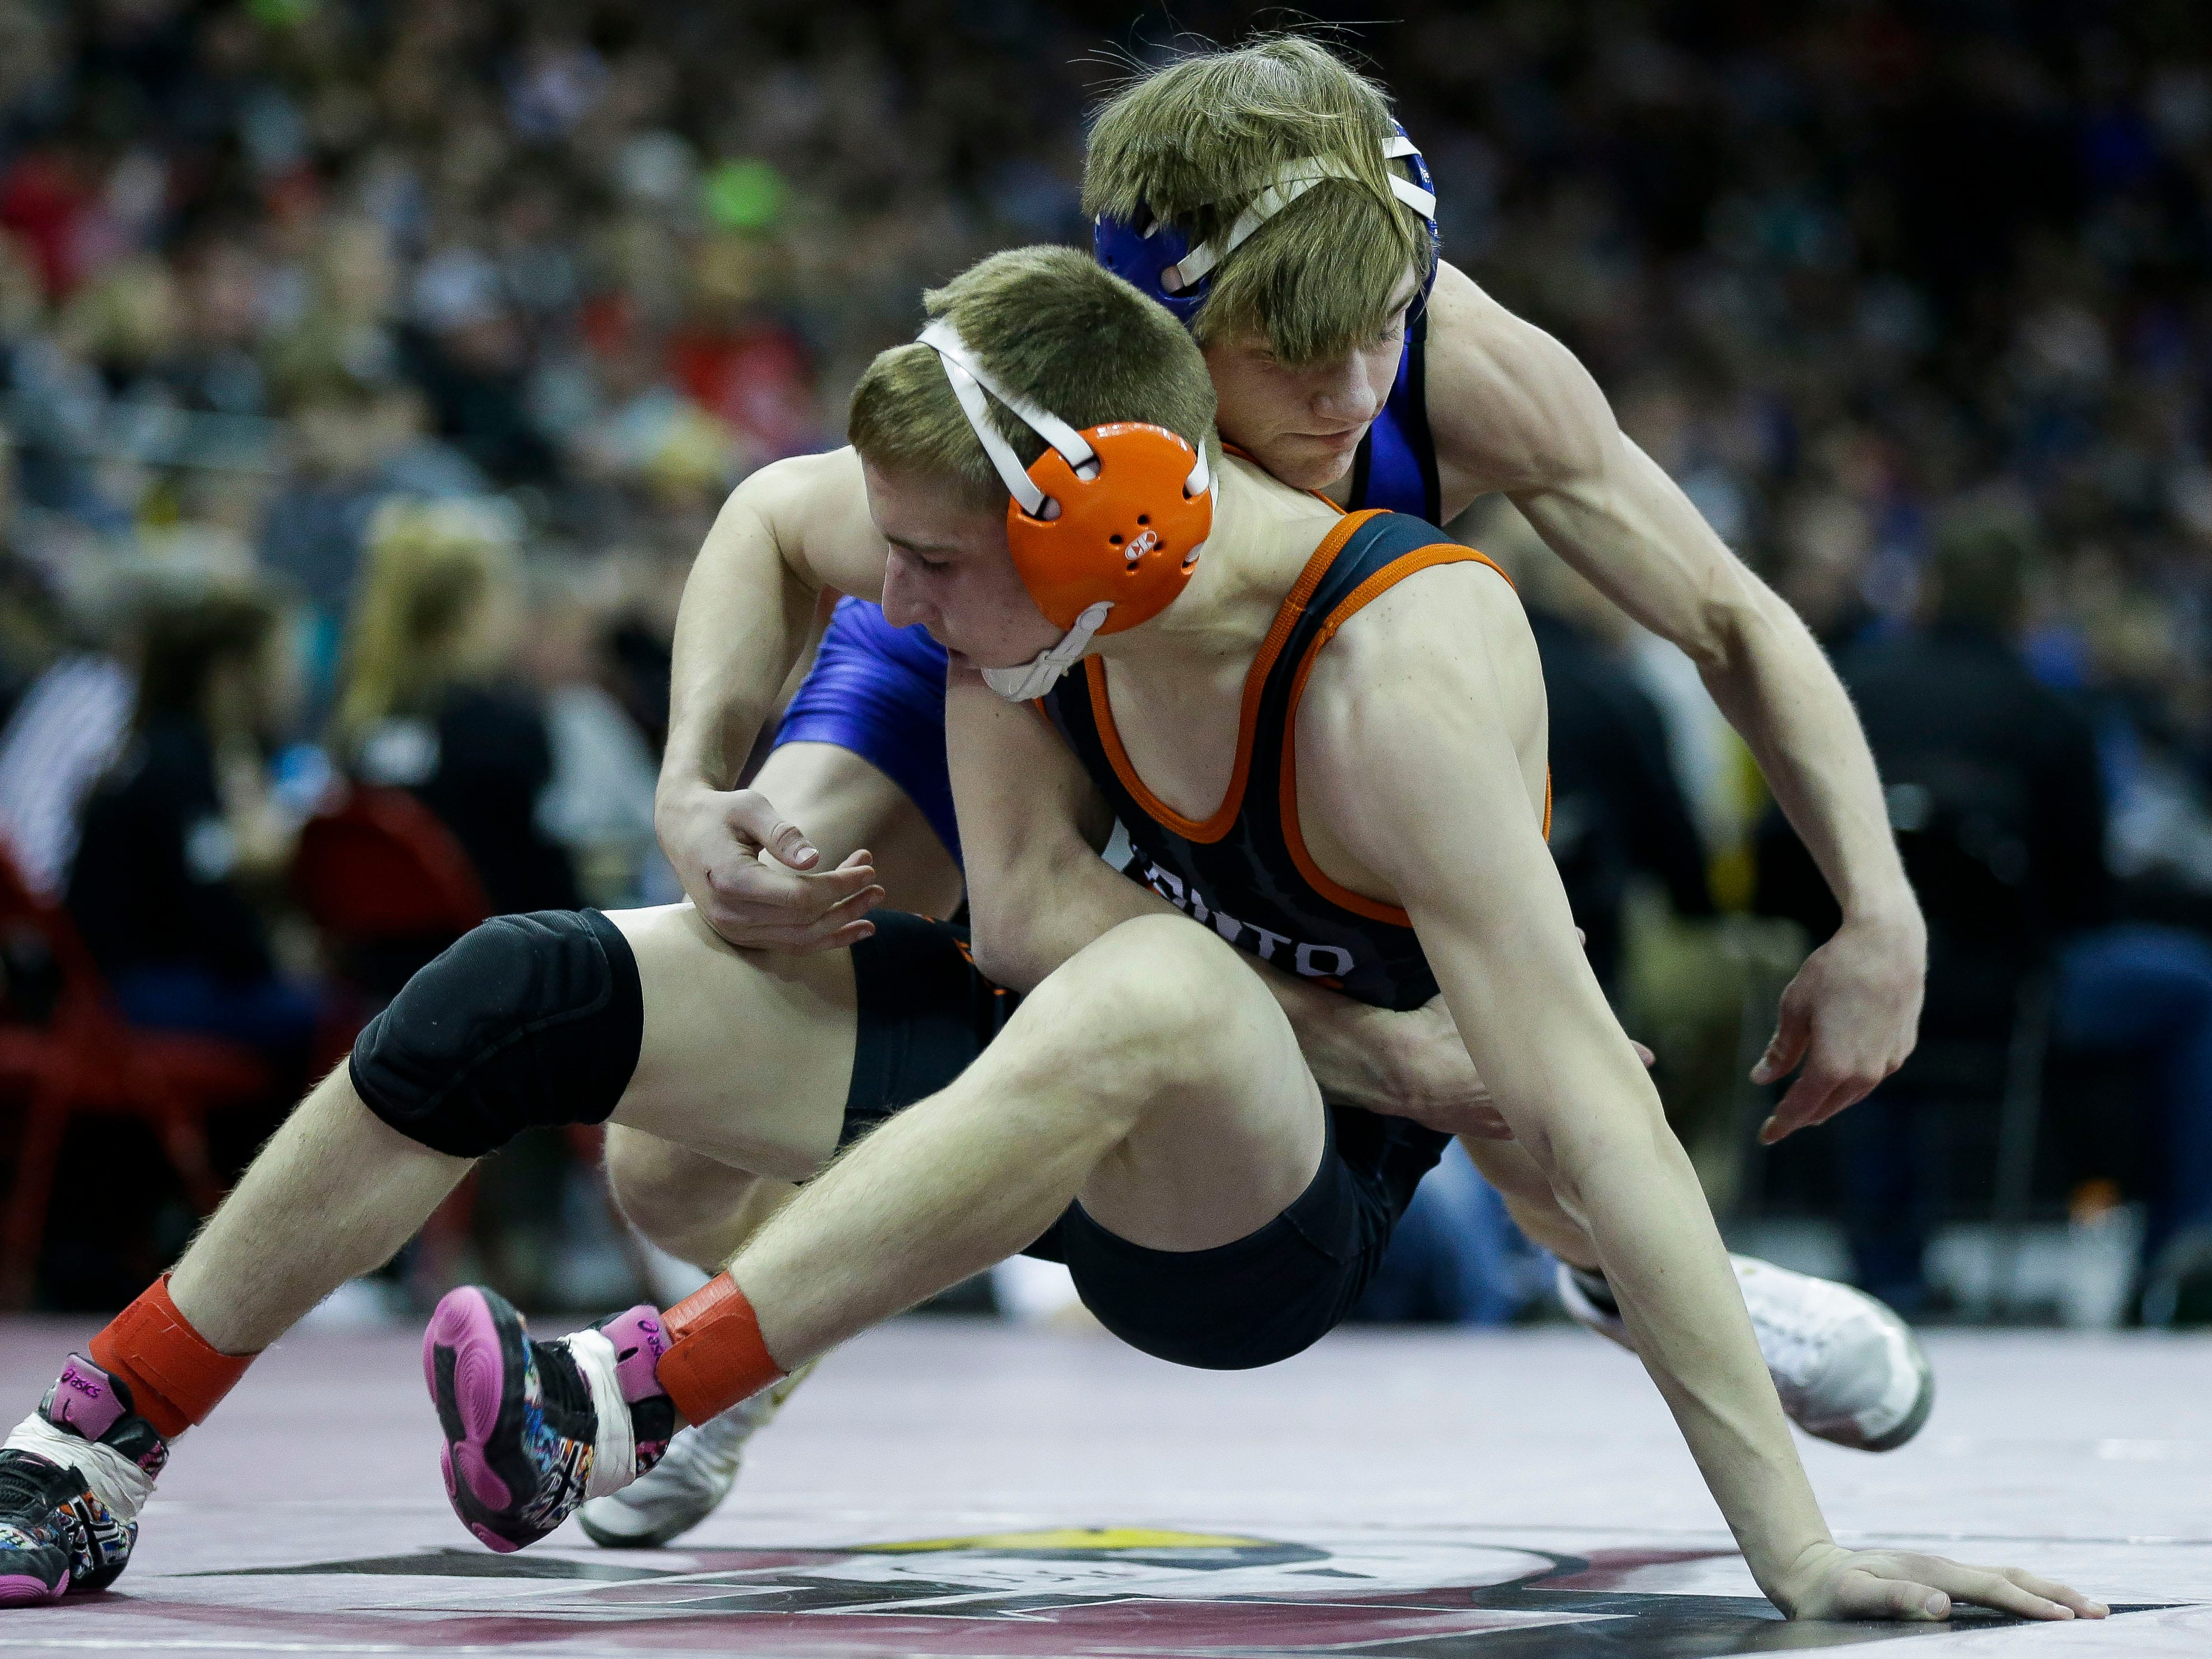 Elkhart Lake-Glenbeulah/Howards Grove's Cody Rebedew wrestles against Oconto Falls' Tyler Budz in a Division 2 126-pound preliminary match during the WIAA state wrestling tournament on Thursday, February 21, 2019, at the Kohl Center in Madison, Wis.